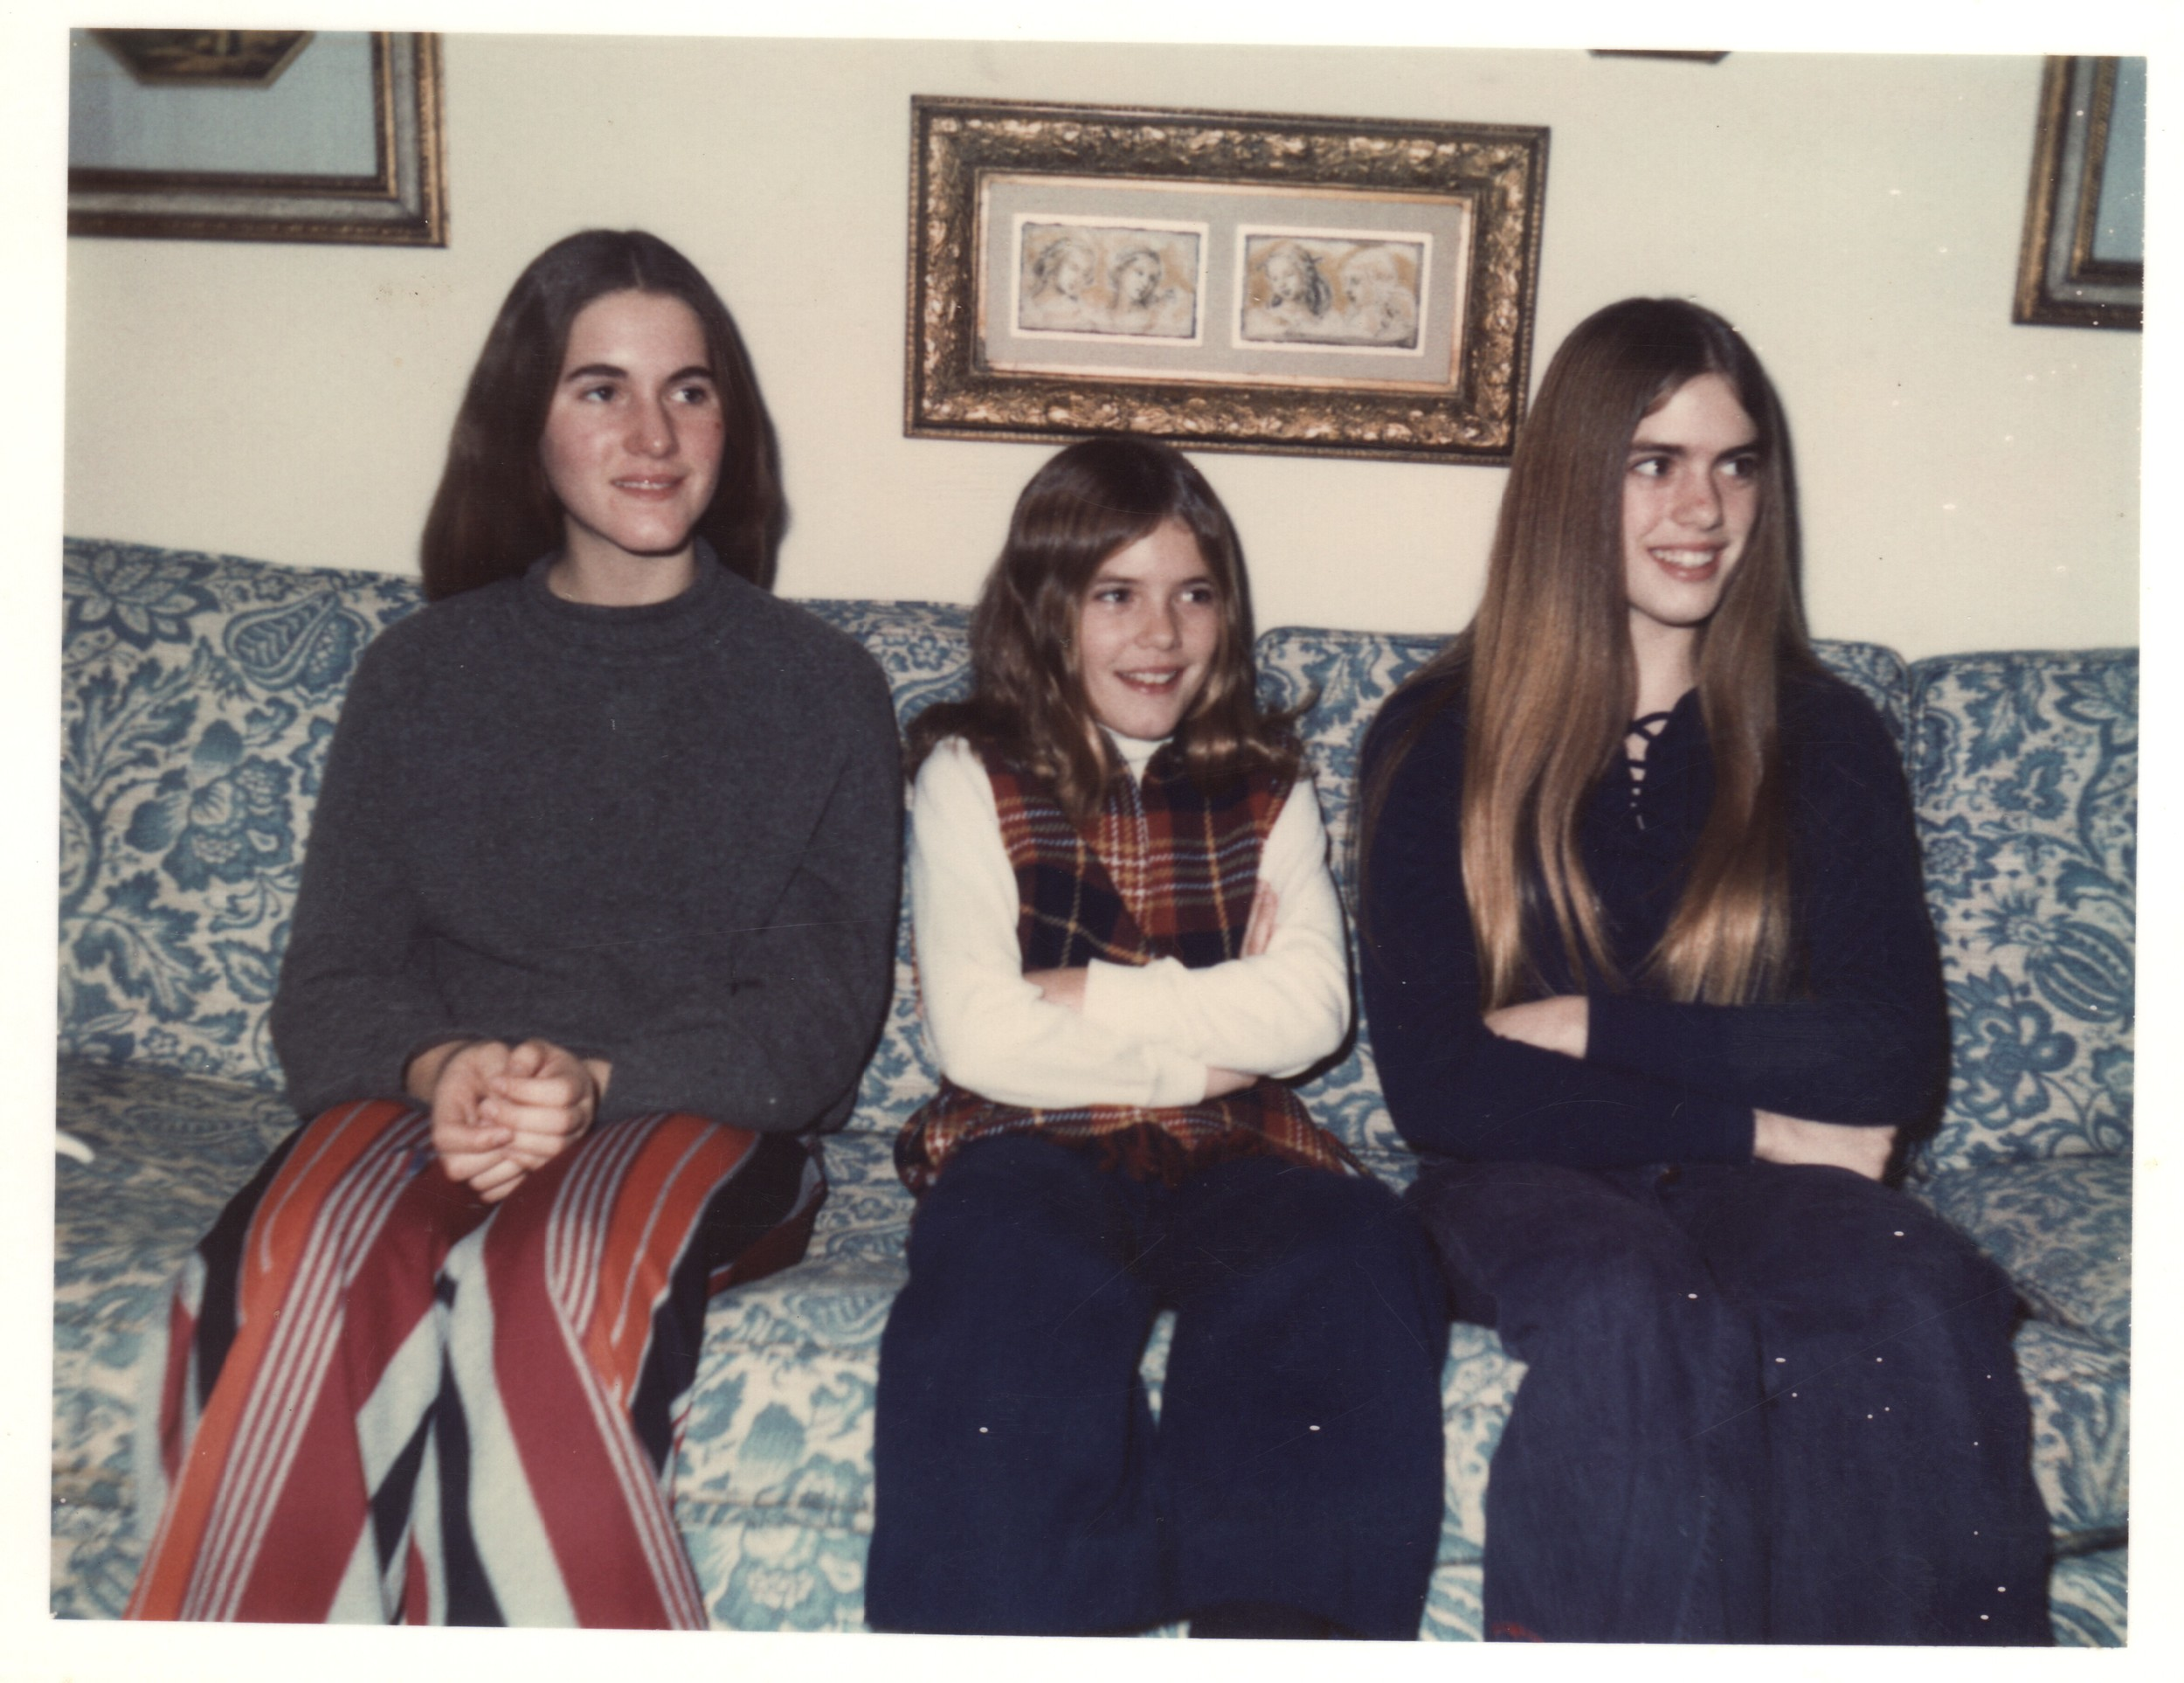 Diane, Suzanne, Mary Jane - Quinlan Sisters.jpg